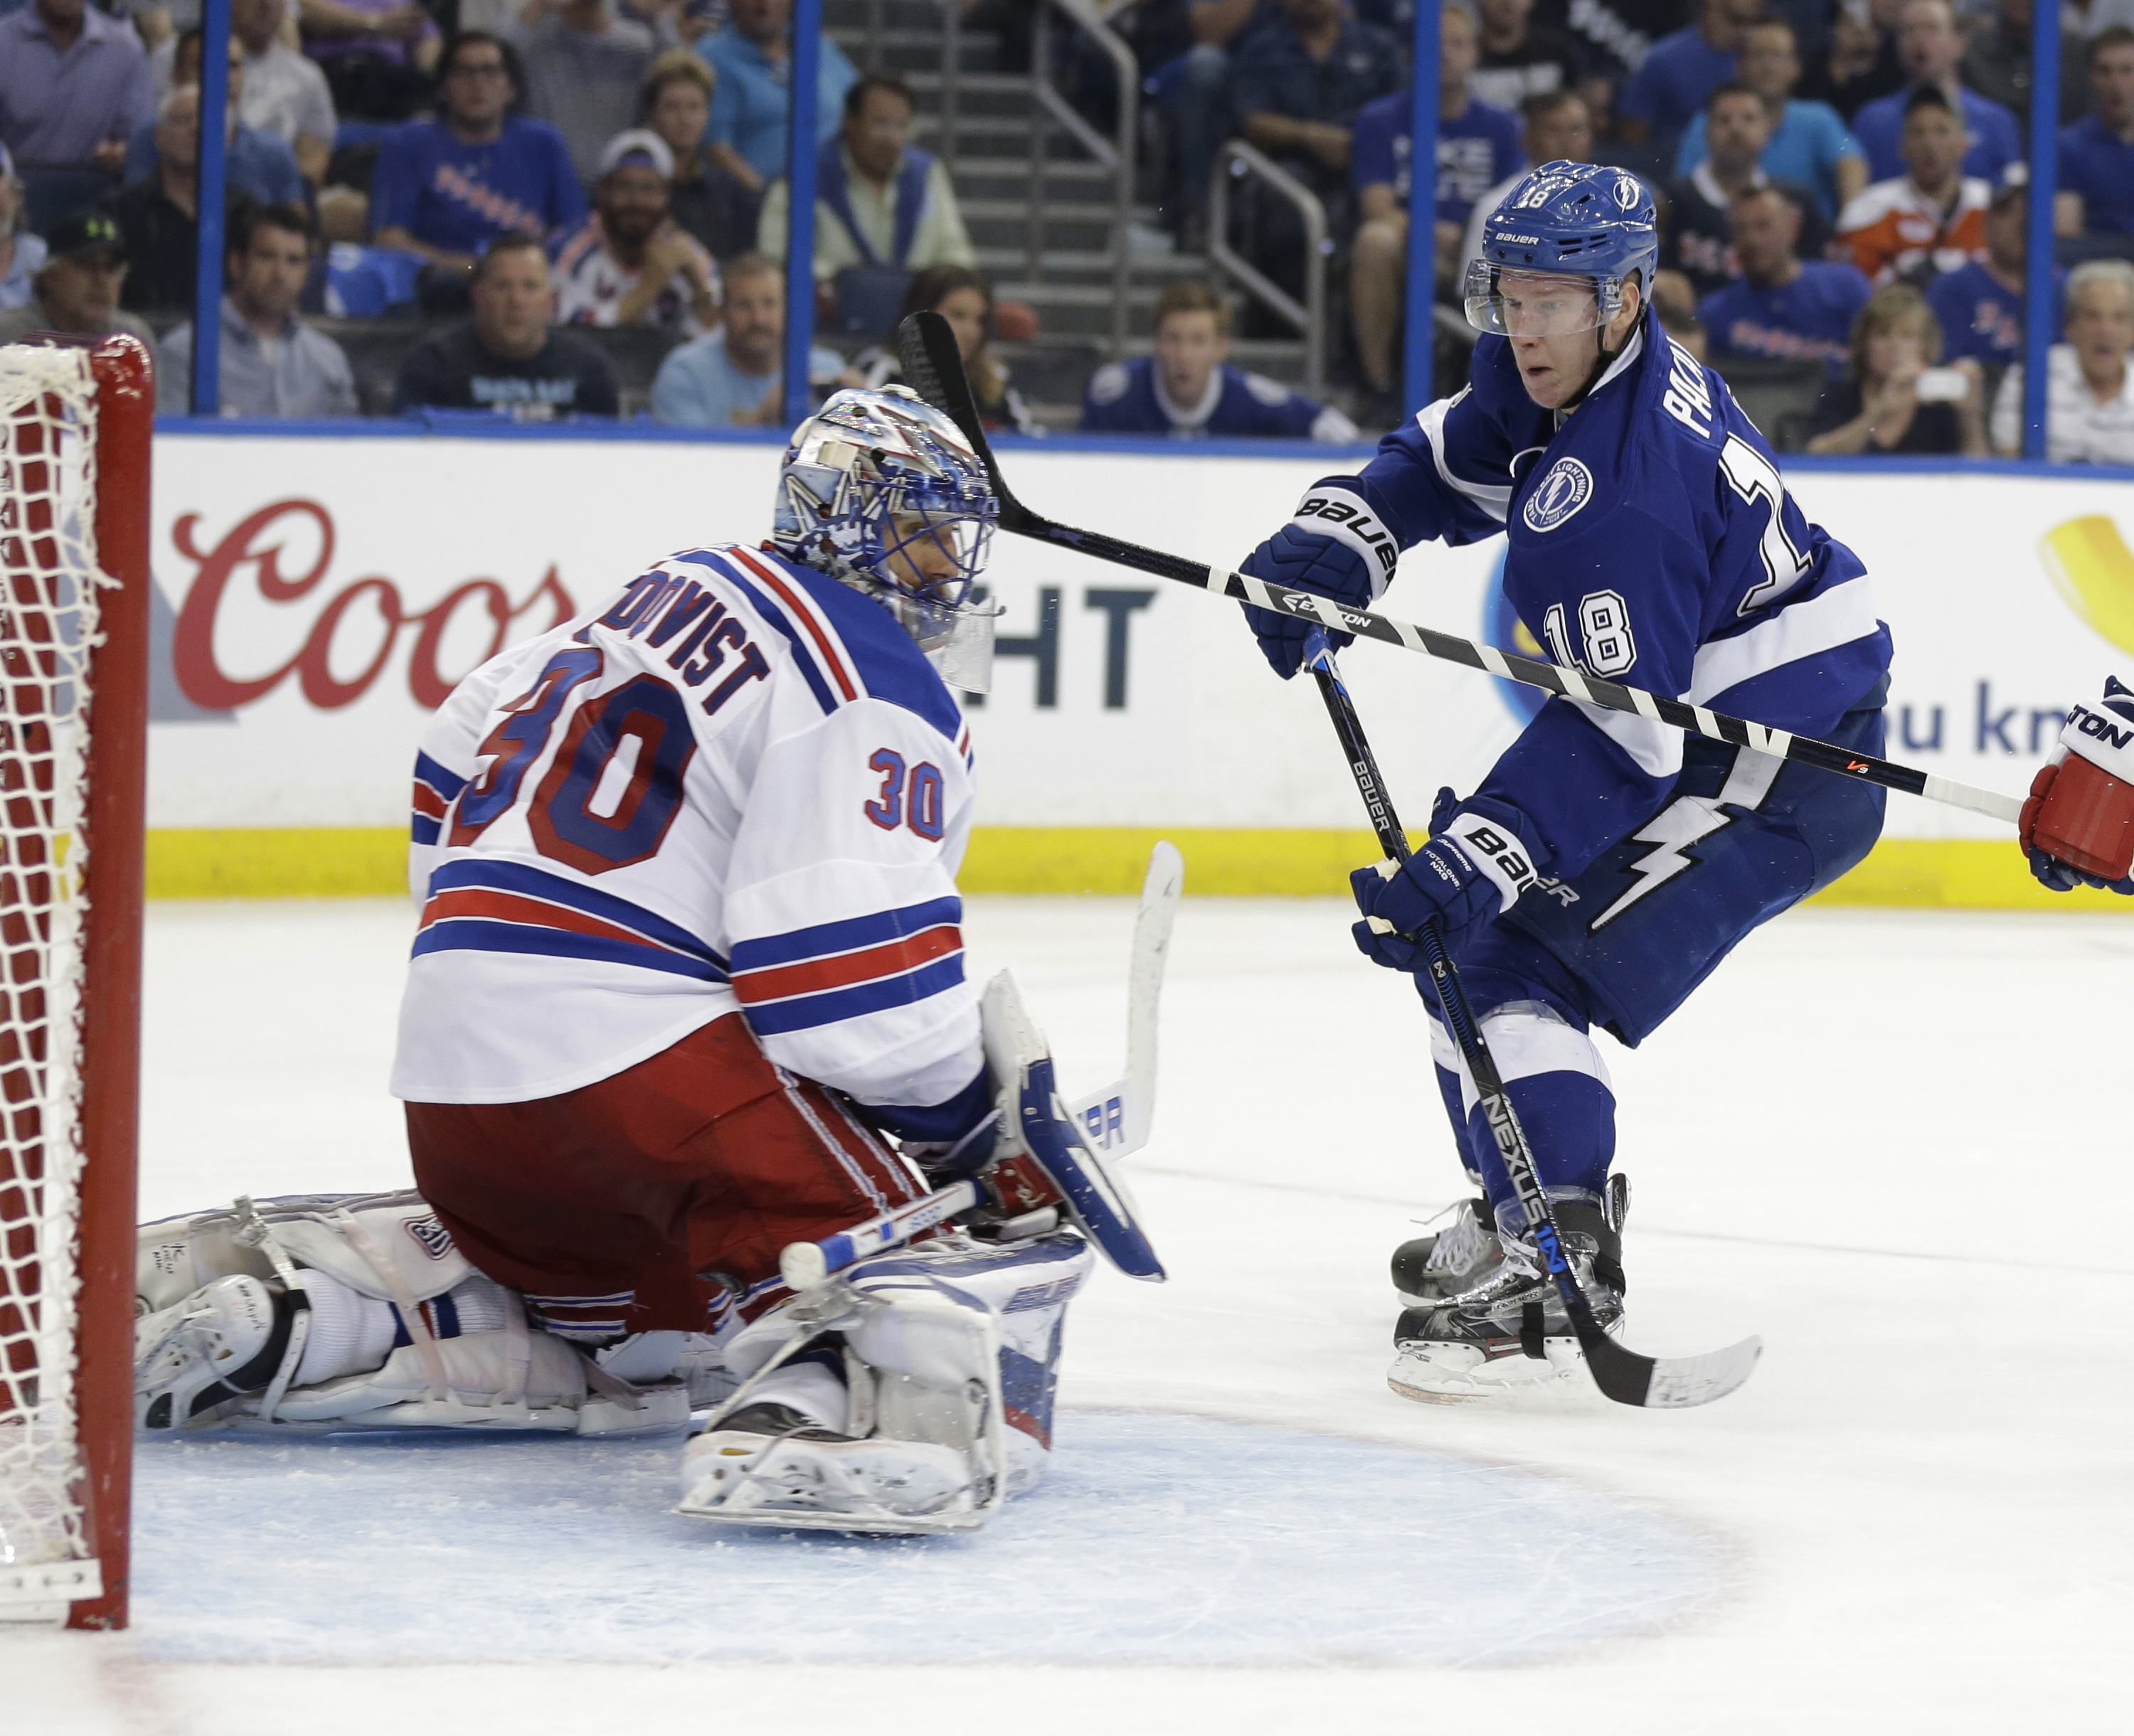 New York Rangers goalie Henrik Lundqvist (30), of Sweden, looks back as Tampa Bay Lightning left wing Ondrej Palat (18), of the Czech Republic, scores during the second period of Game 3 of the Eastern Conference finals, in the NHL hockey Stanley Cup playo